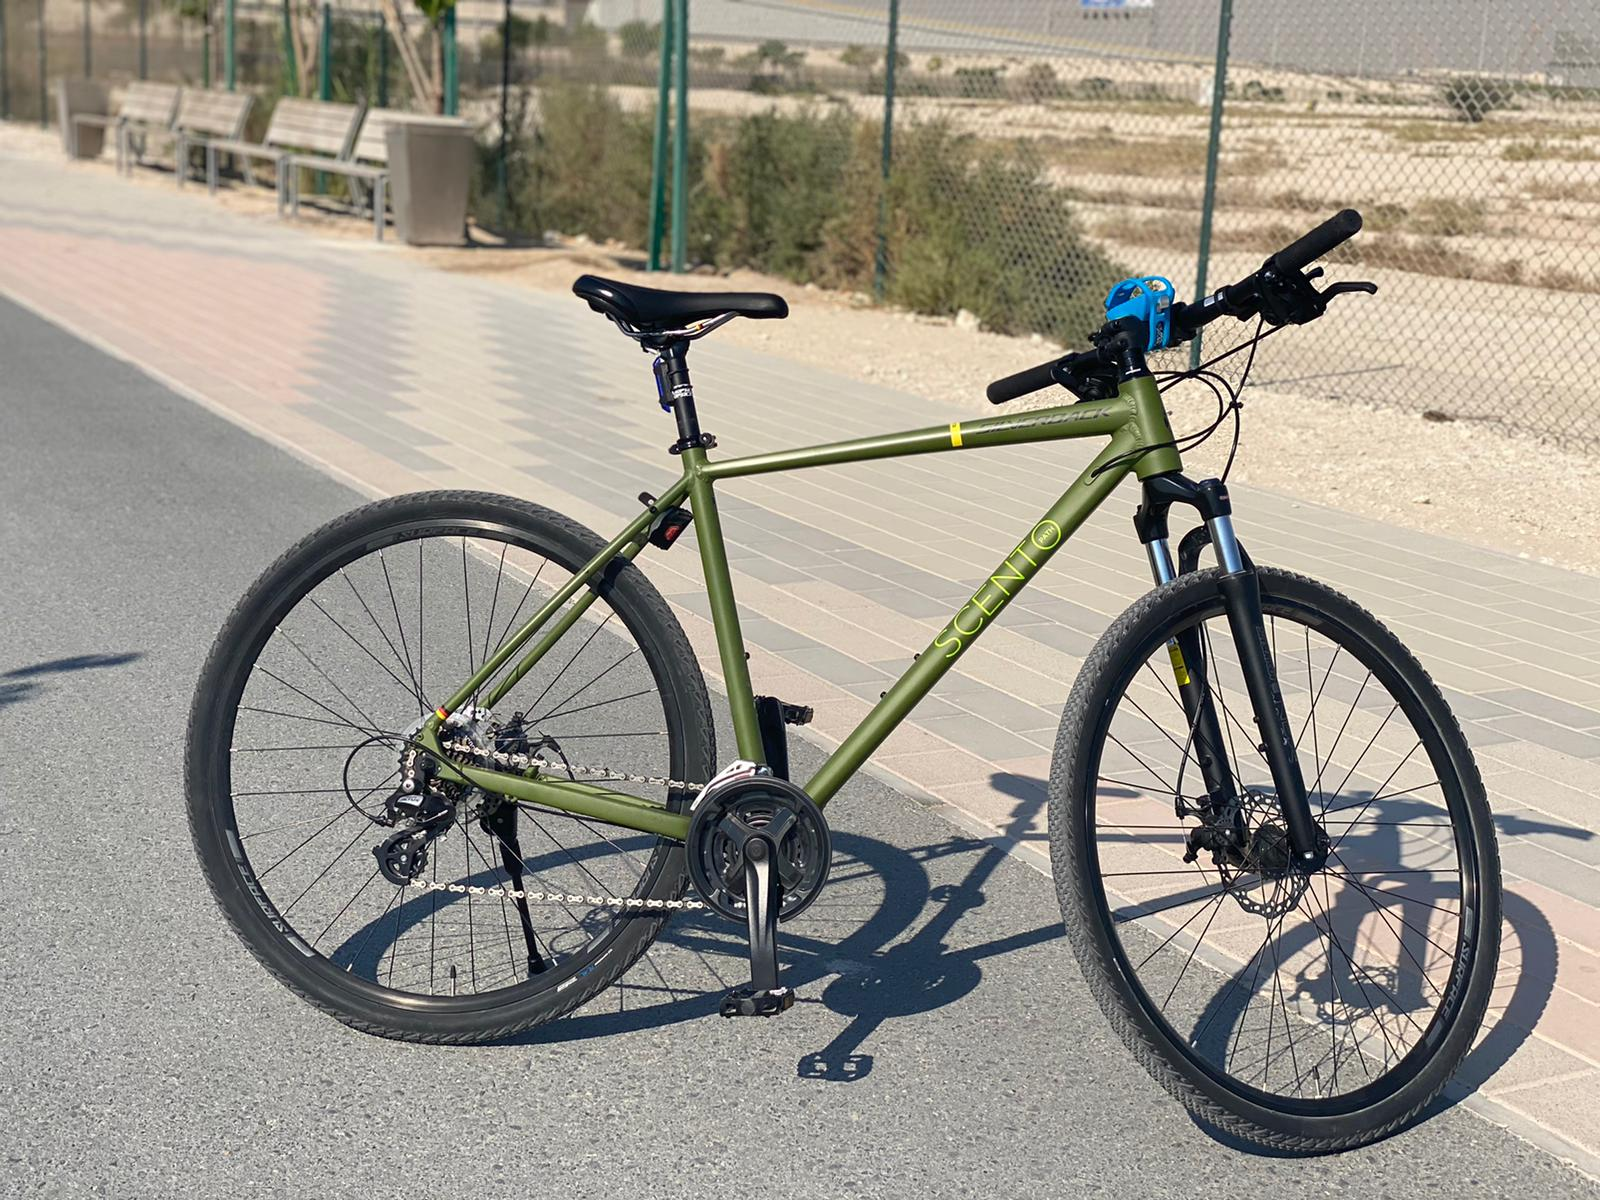 Silverback SCENTO(german) brand hardly used cycle is for sale